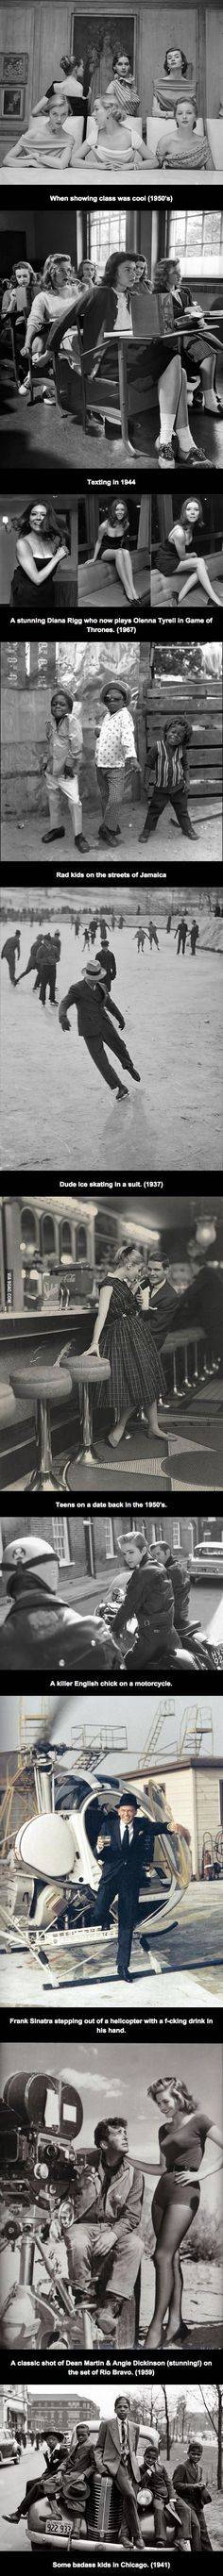 Stunning photo's from the 1950s   http://9gag.com/gag/ar4NdE0